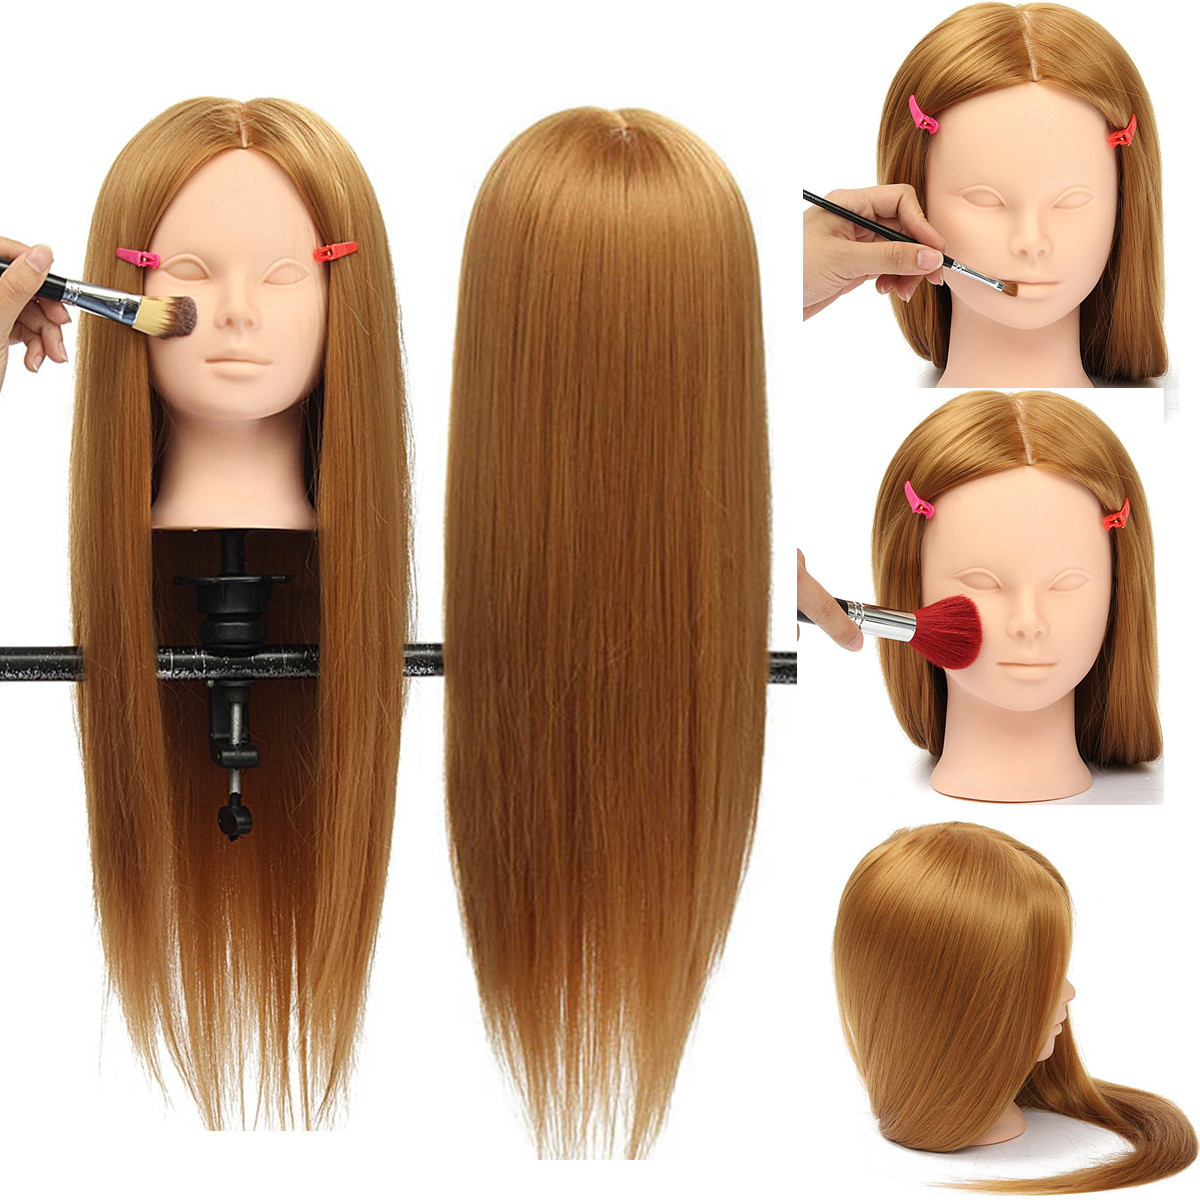 26 Long Hair Training Mannequin Head Model Hairdressing